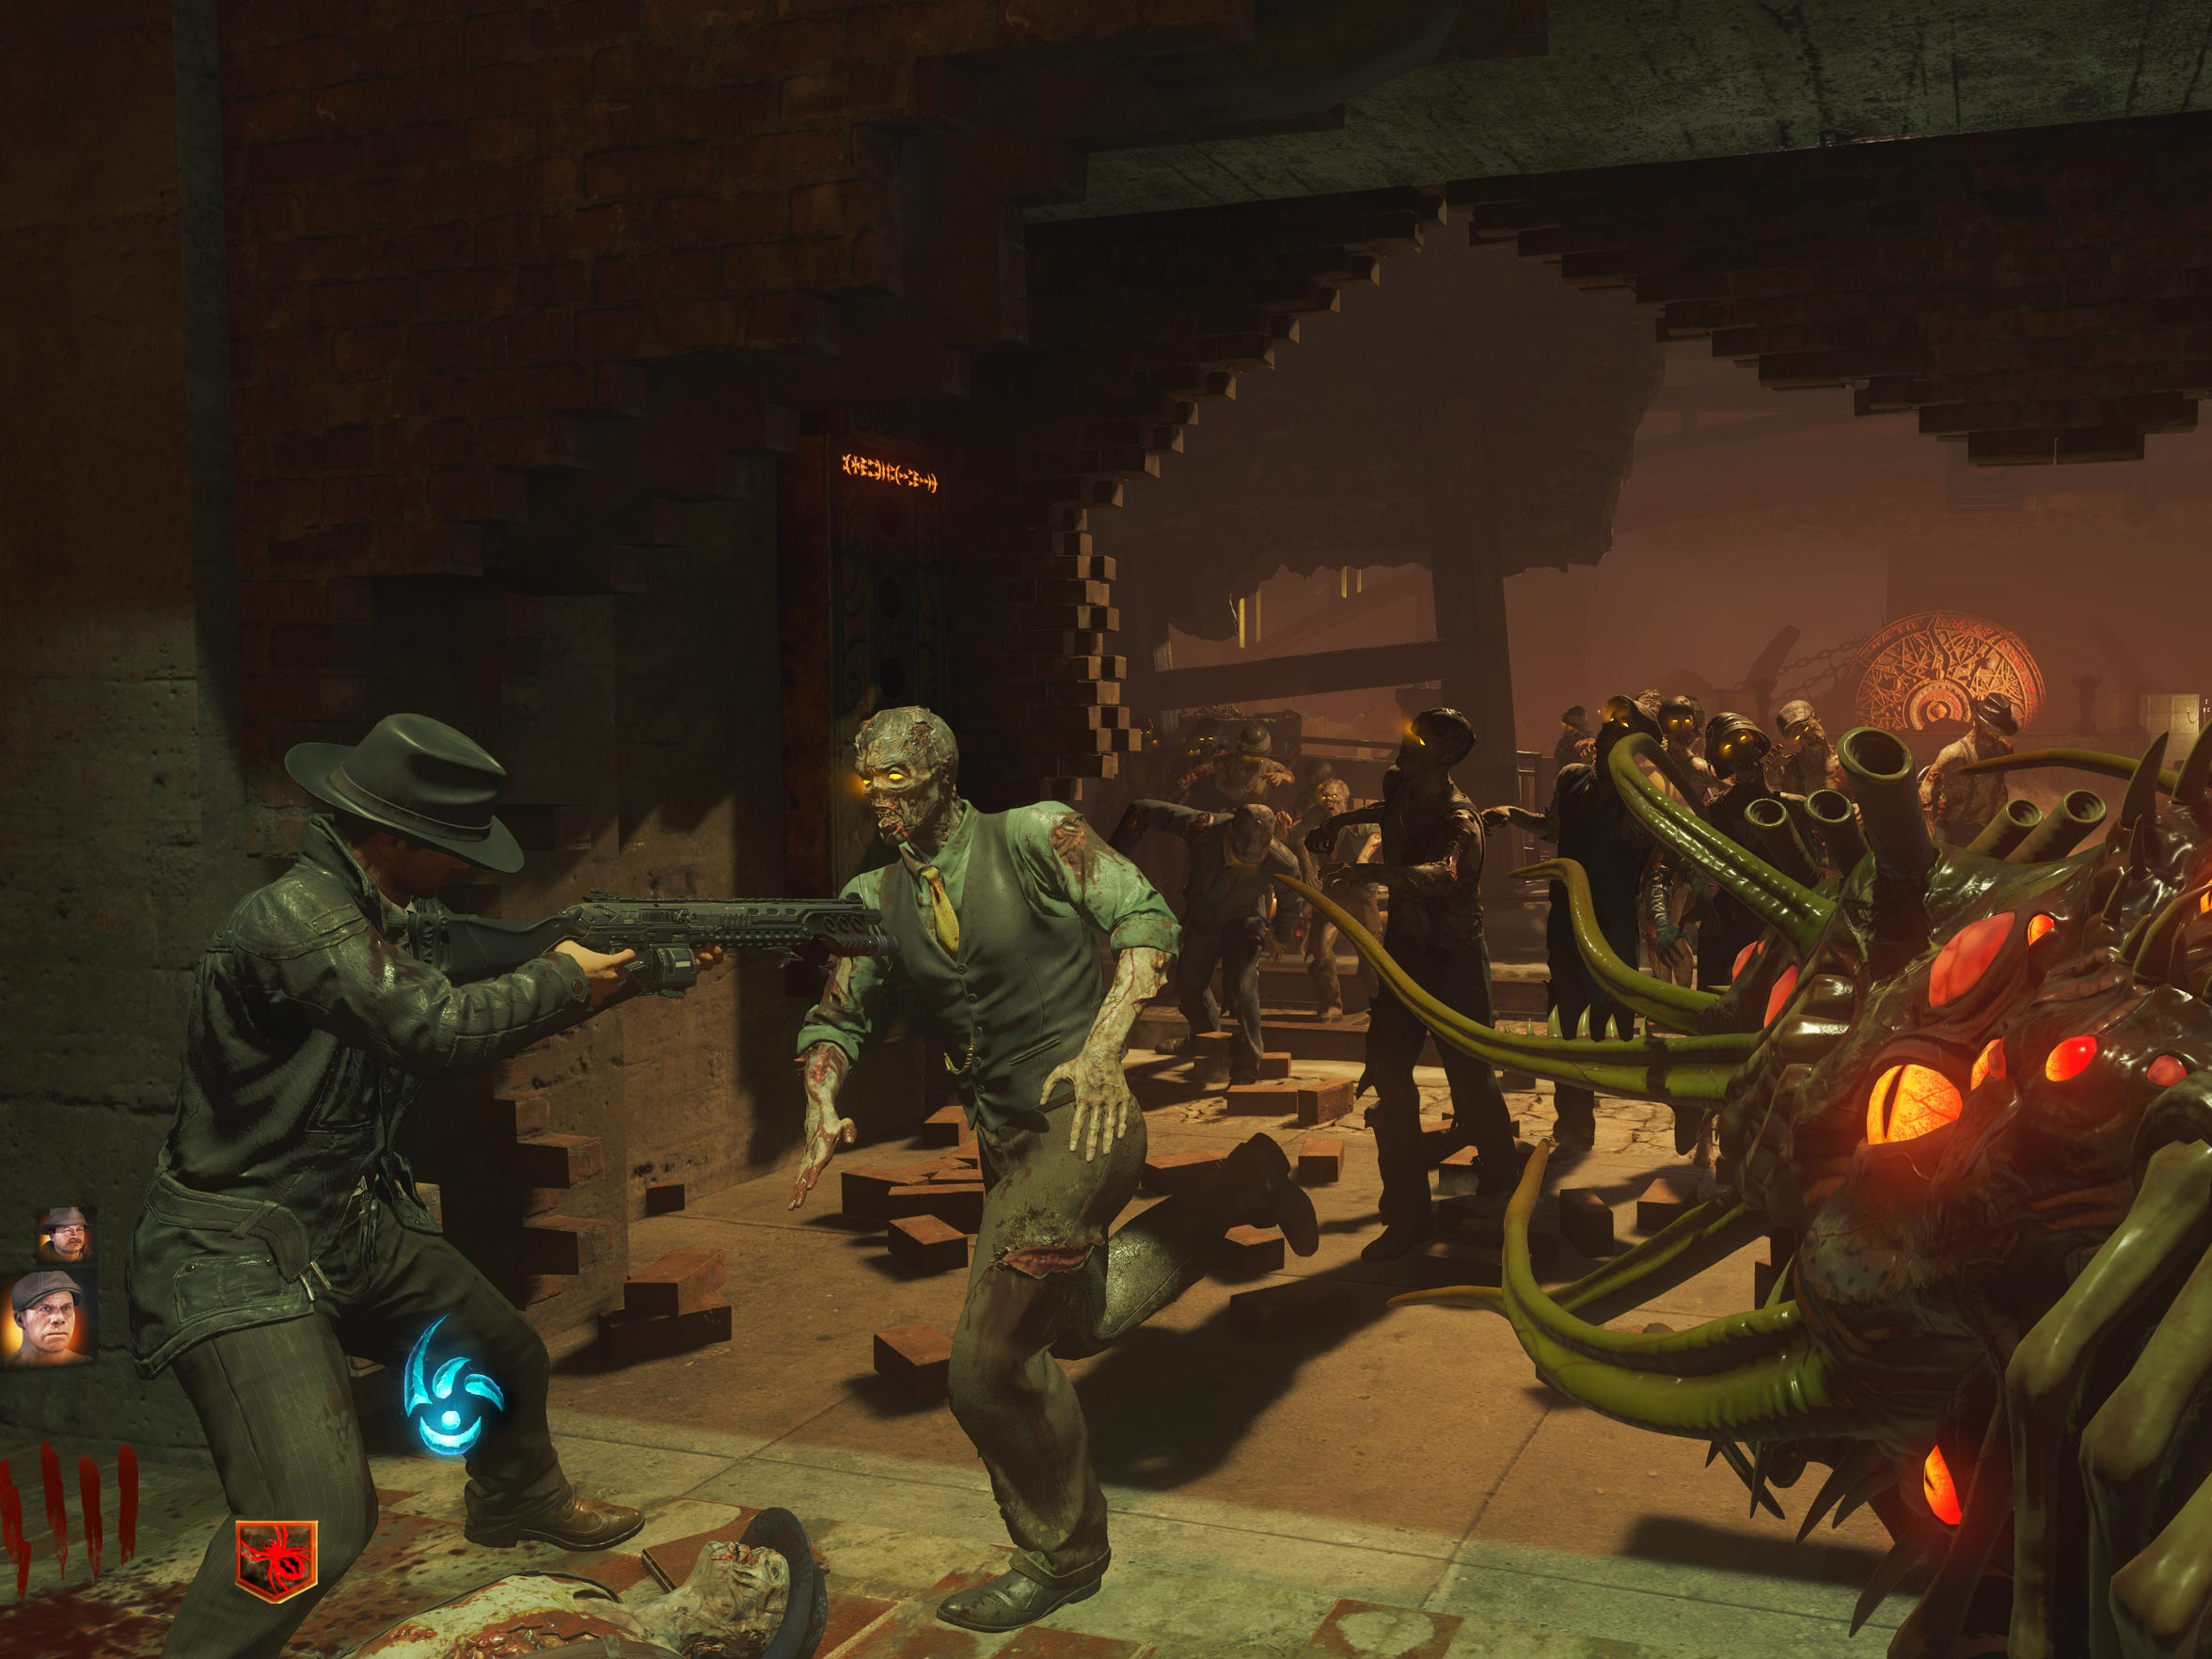 """Zombies mode in """"Call of Duty: Black Ops III"""" adds a noir-style story and the ability to transform into a monster."""